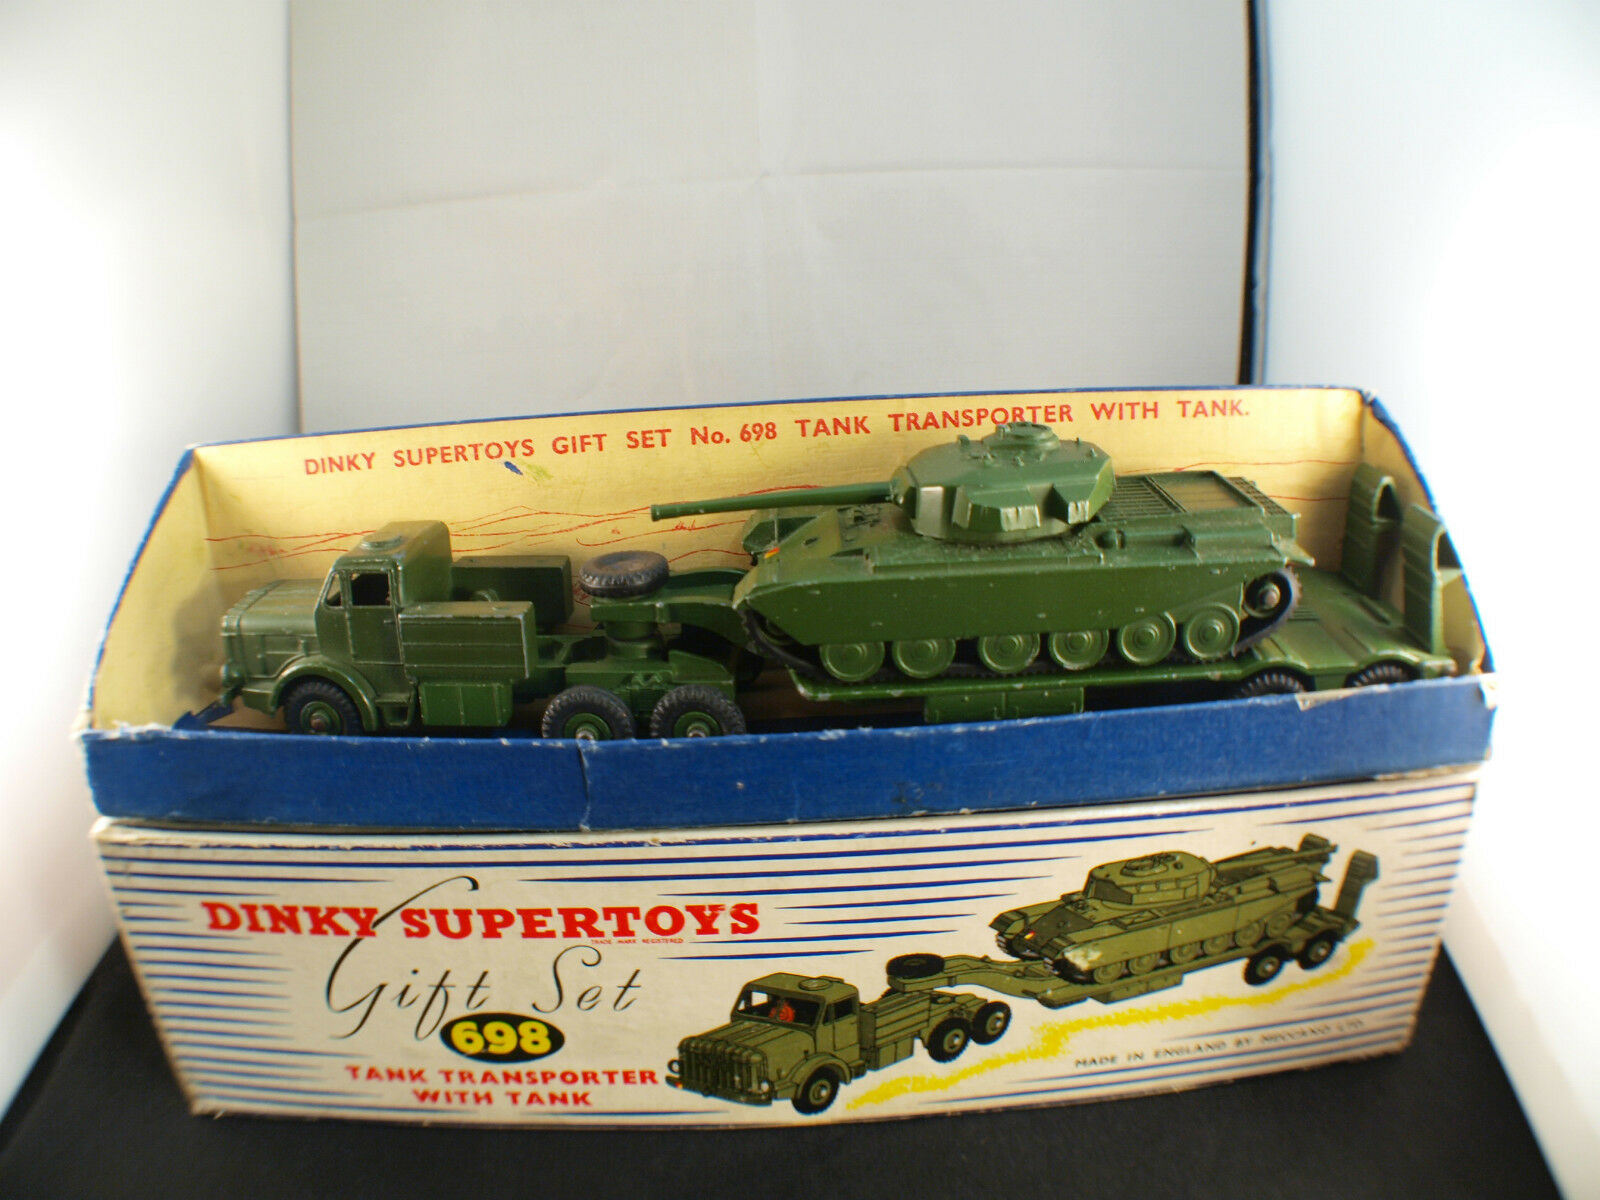 Dinky Toys GB 698 gift set tank transporter militaire Thornycroft Mighty Antar